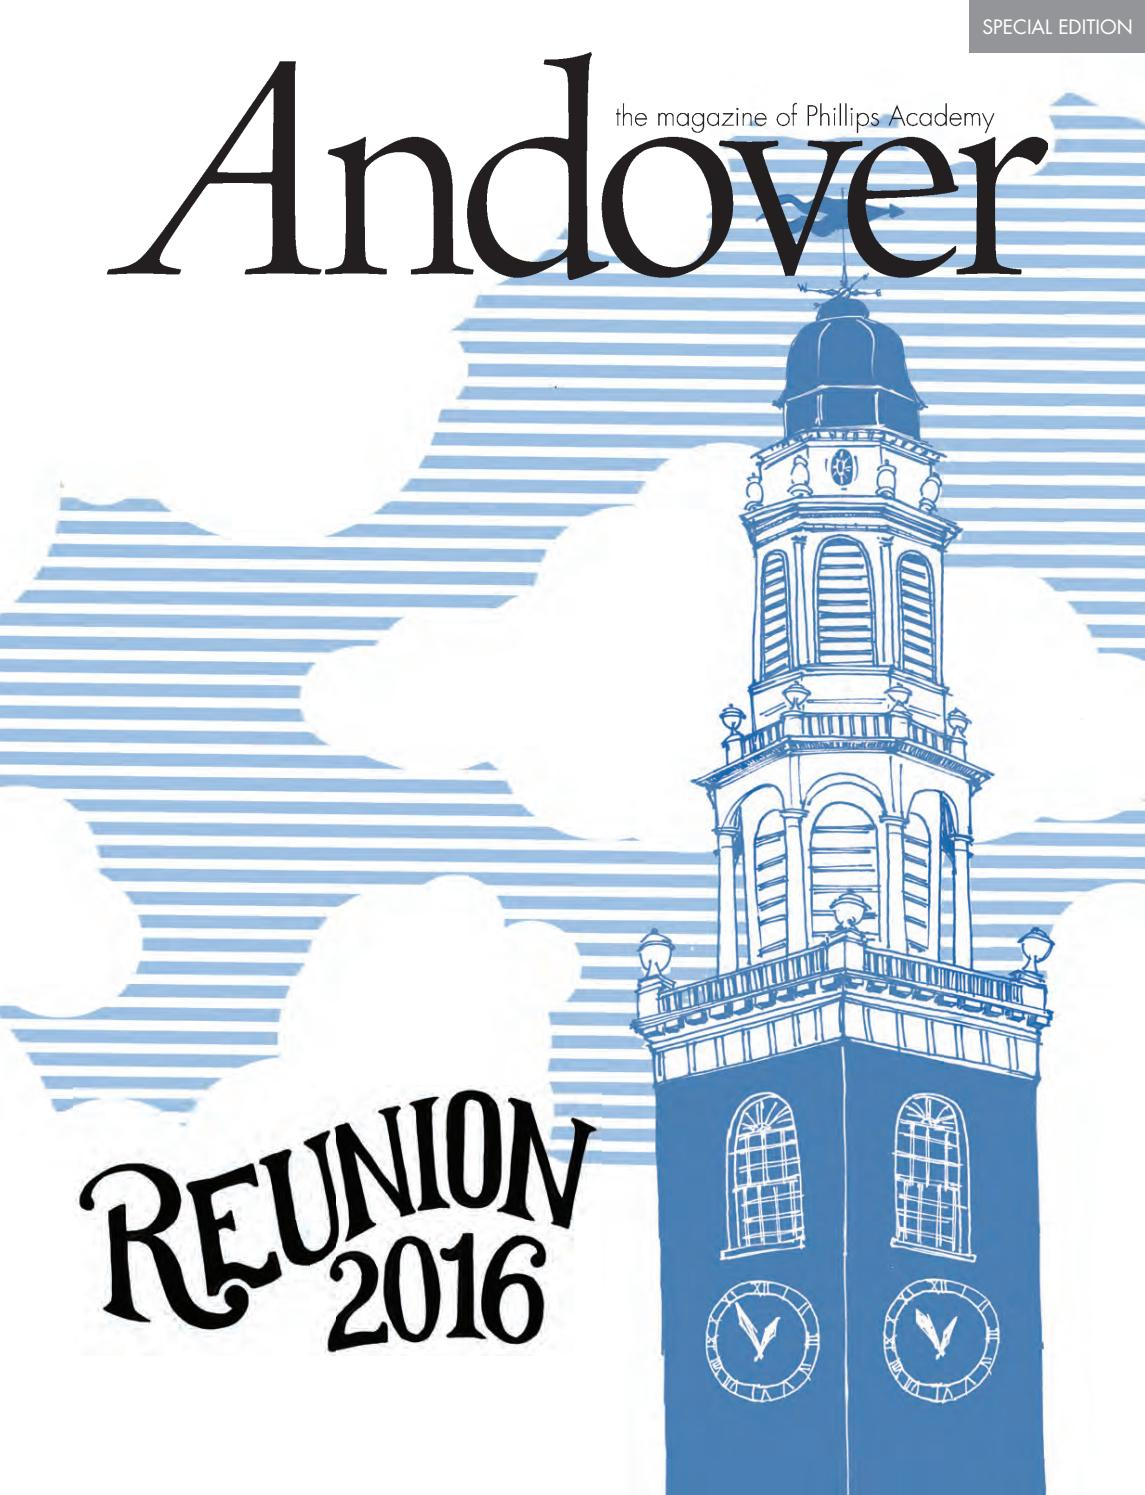 Phenomenal Andover Magazine Reunion 2016 Special Edition By Phillips Squirreltailoven Fun Painted Chair Ideas Images Squirreltailovenorg